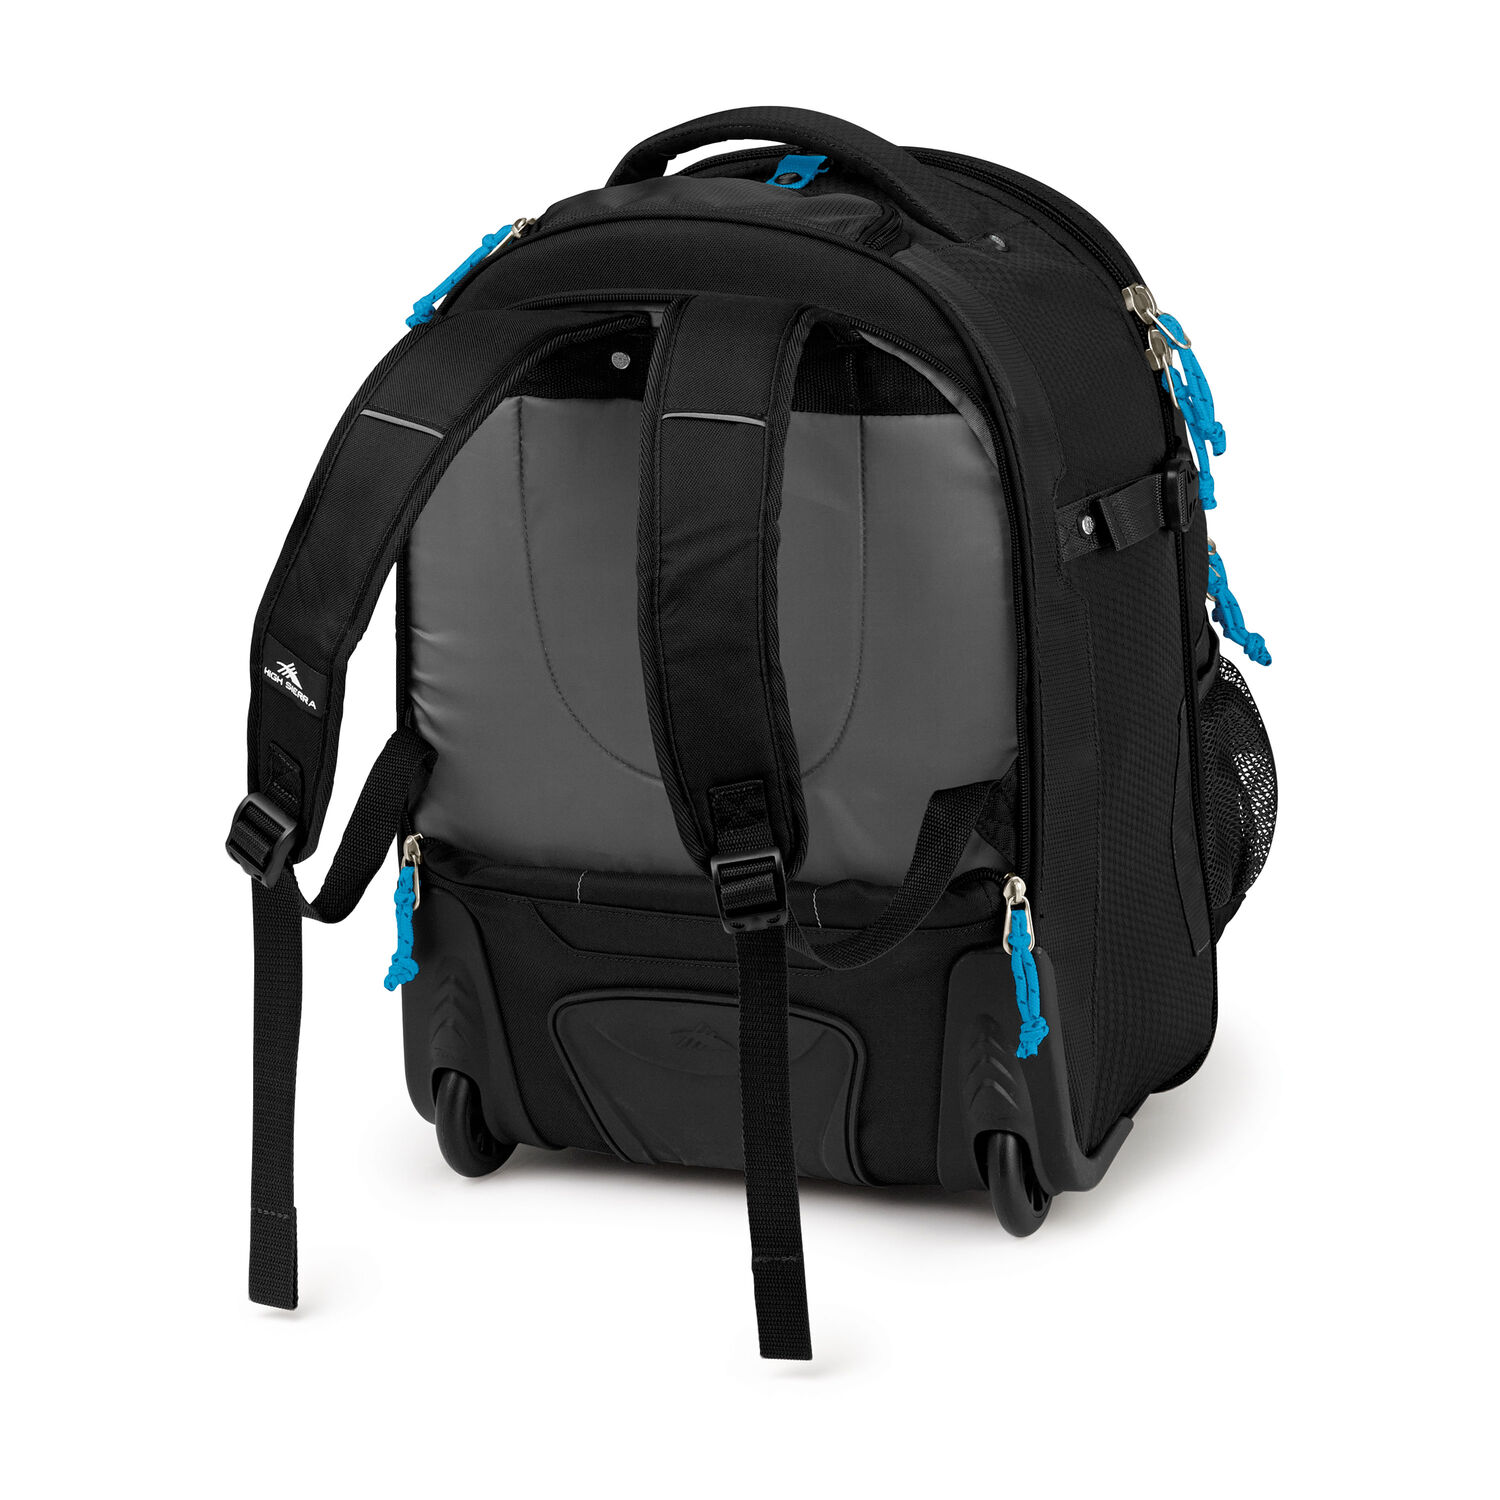 f2c06c48b2 High Sierra Ultimate Access 2.0 Carry-On Wheeled Backpack with Removable  Daypack in the color